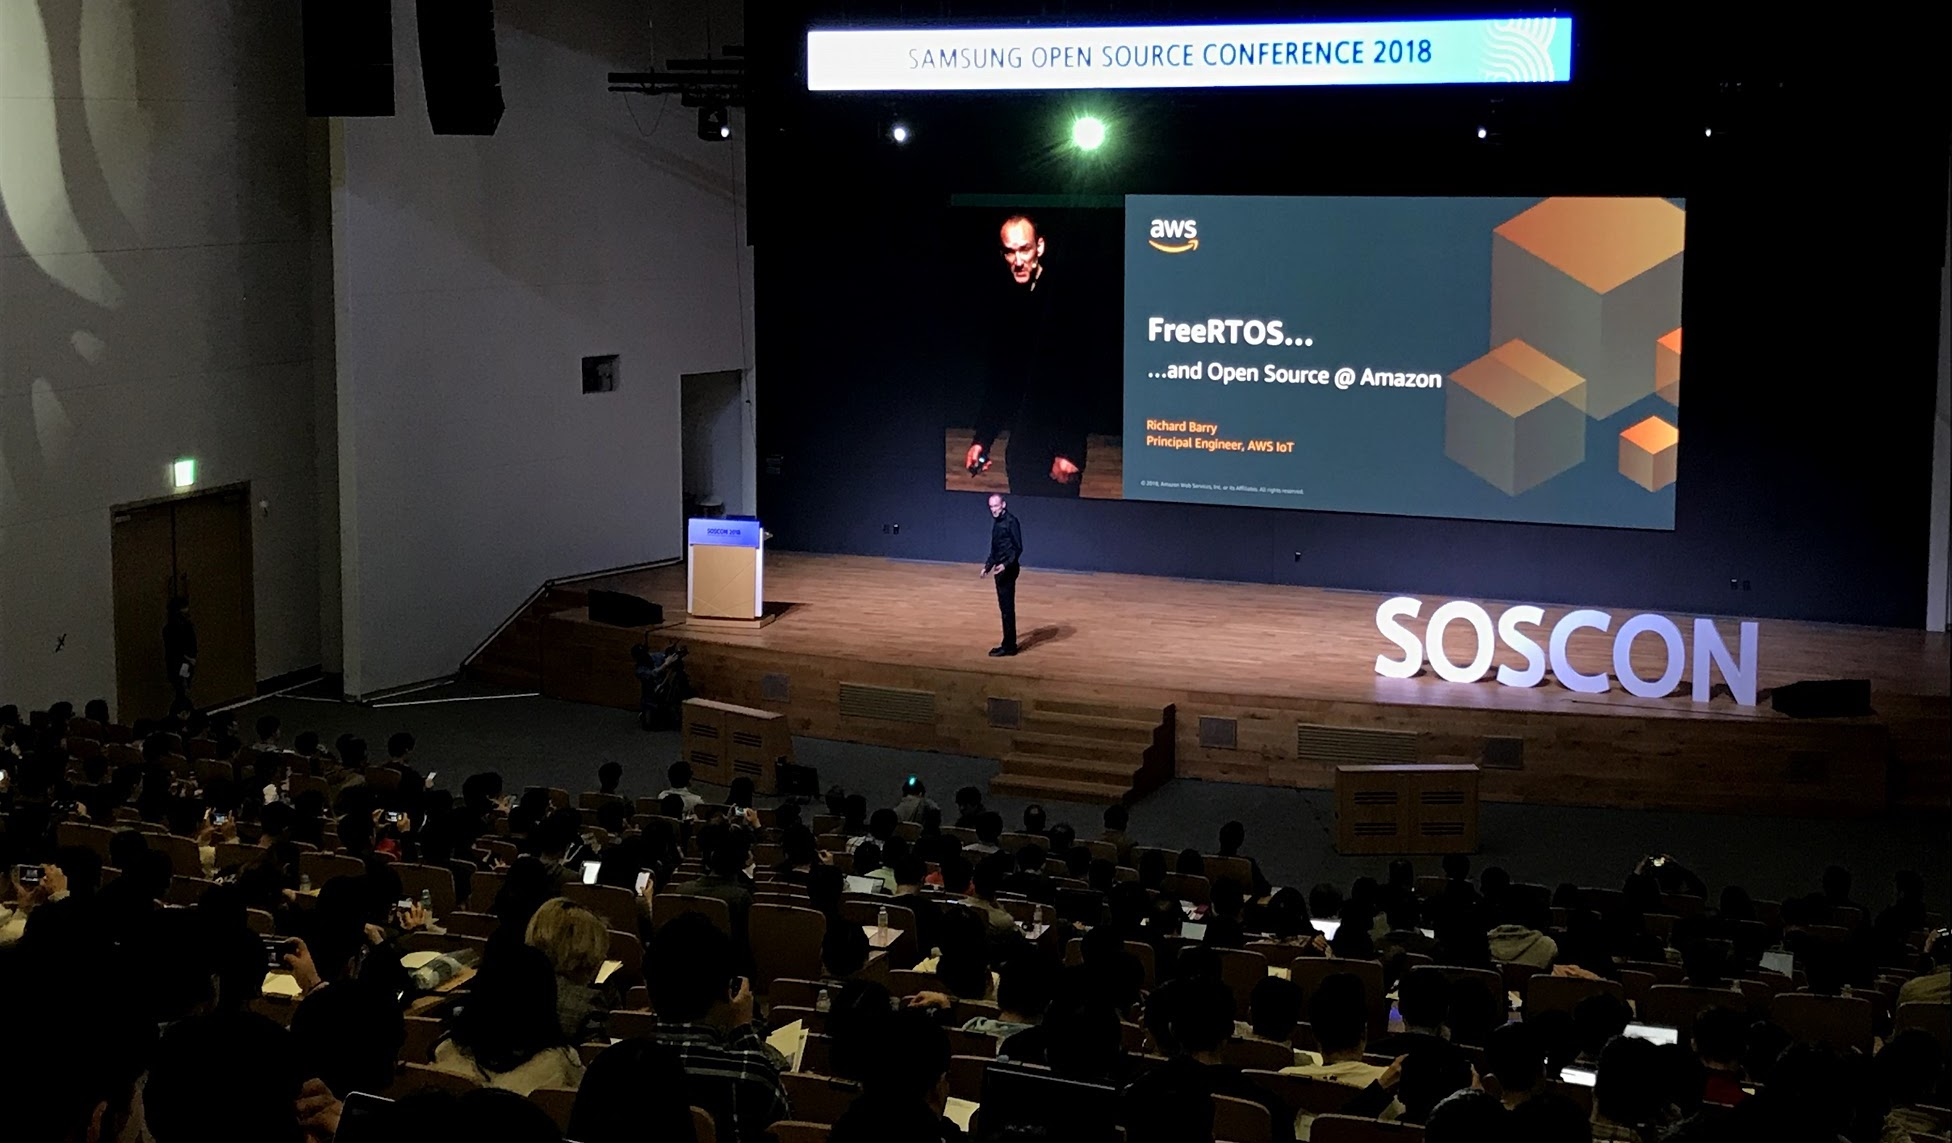 AWS at the Samsung Open Source Conference | AWS Open Source Blog